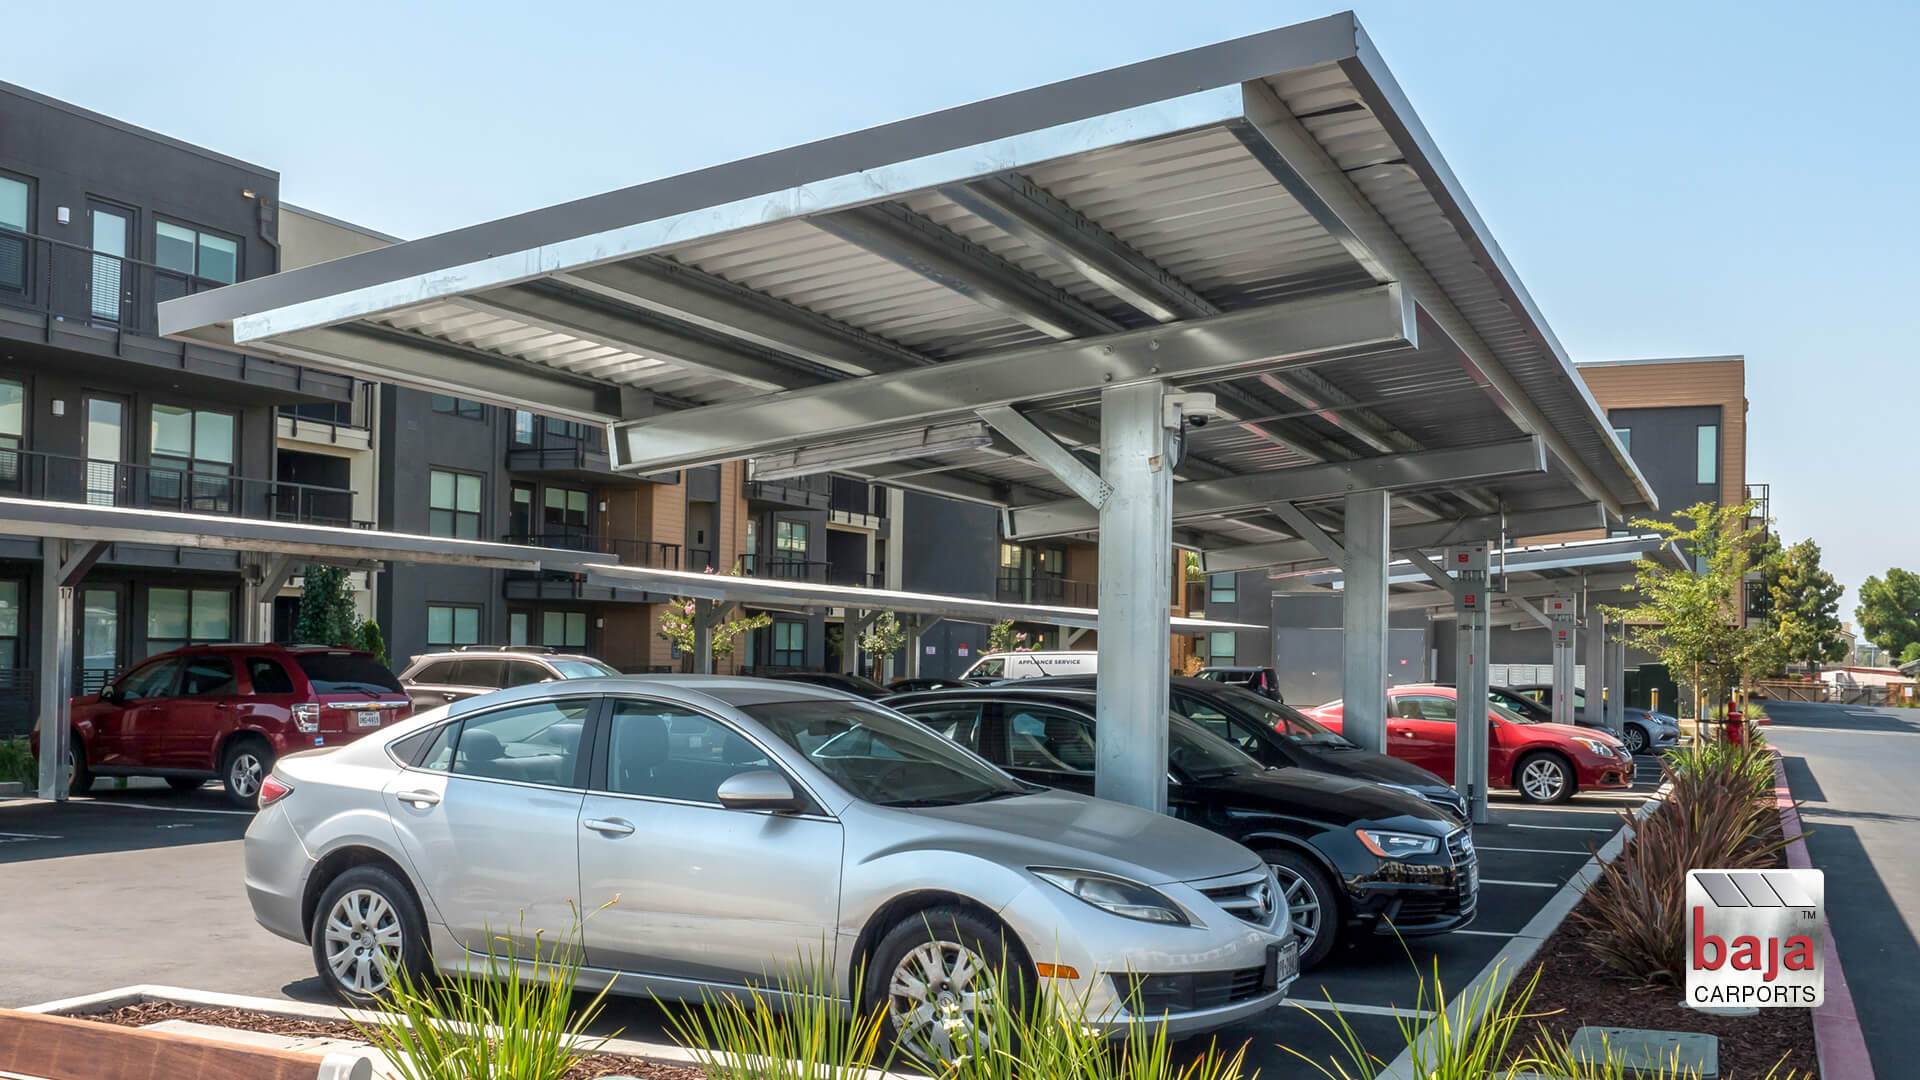 more and more multi housing solar carports are being installed across the united states by baja carports